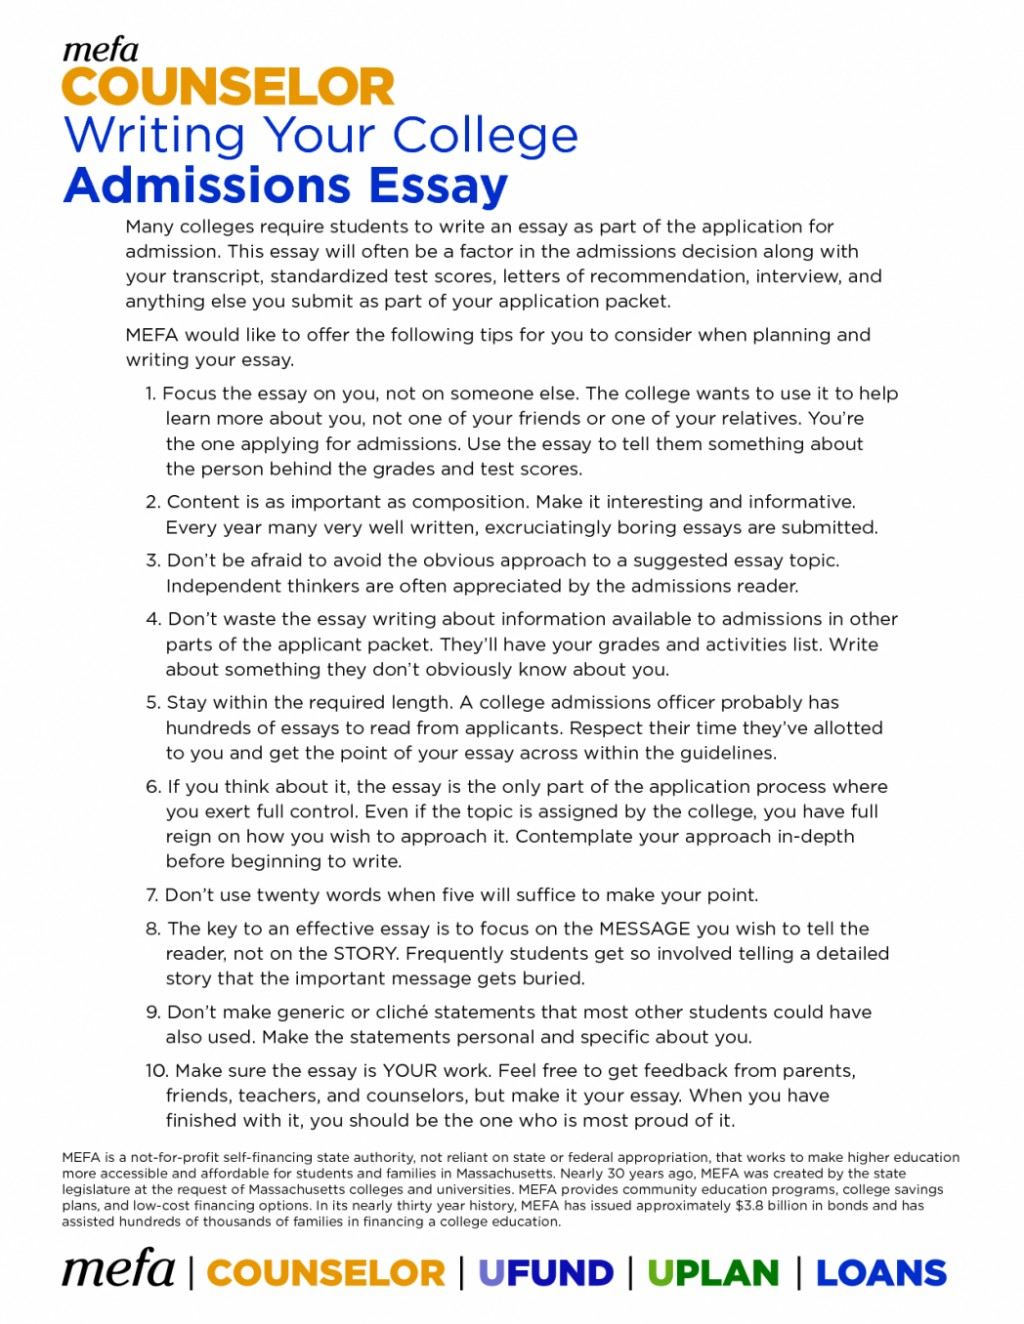 003 Essay Example How Long Should College Essays Writing Help High School Many Paragraphs Application Wuaom Pages Words What About Formatted In Mla Format Fascinating Be Supplemental My Large